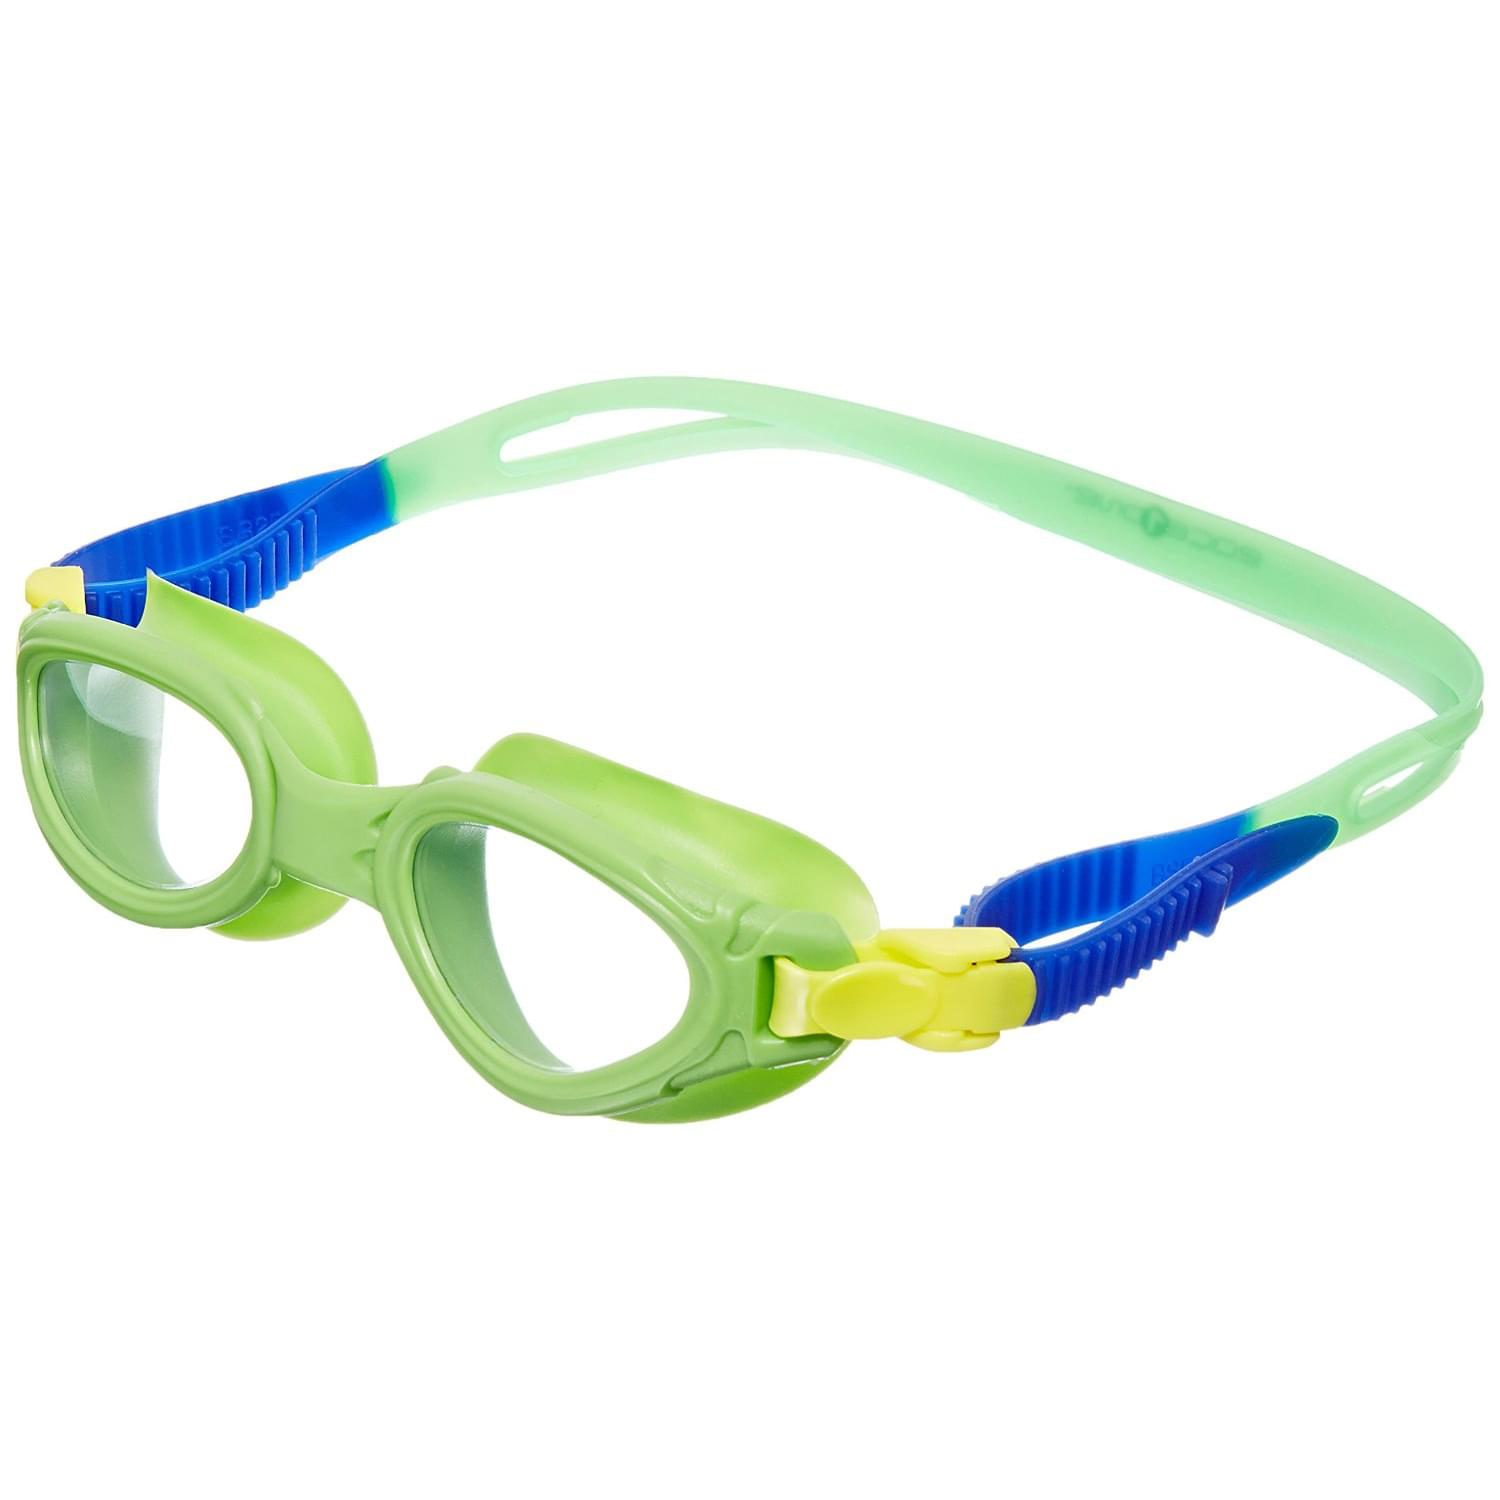 Race One Relay Kids' Pool Goggles